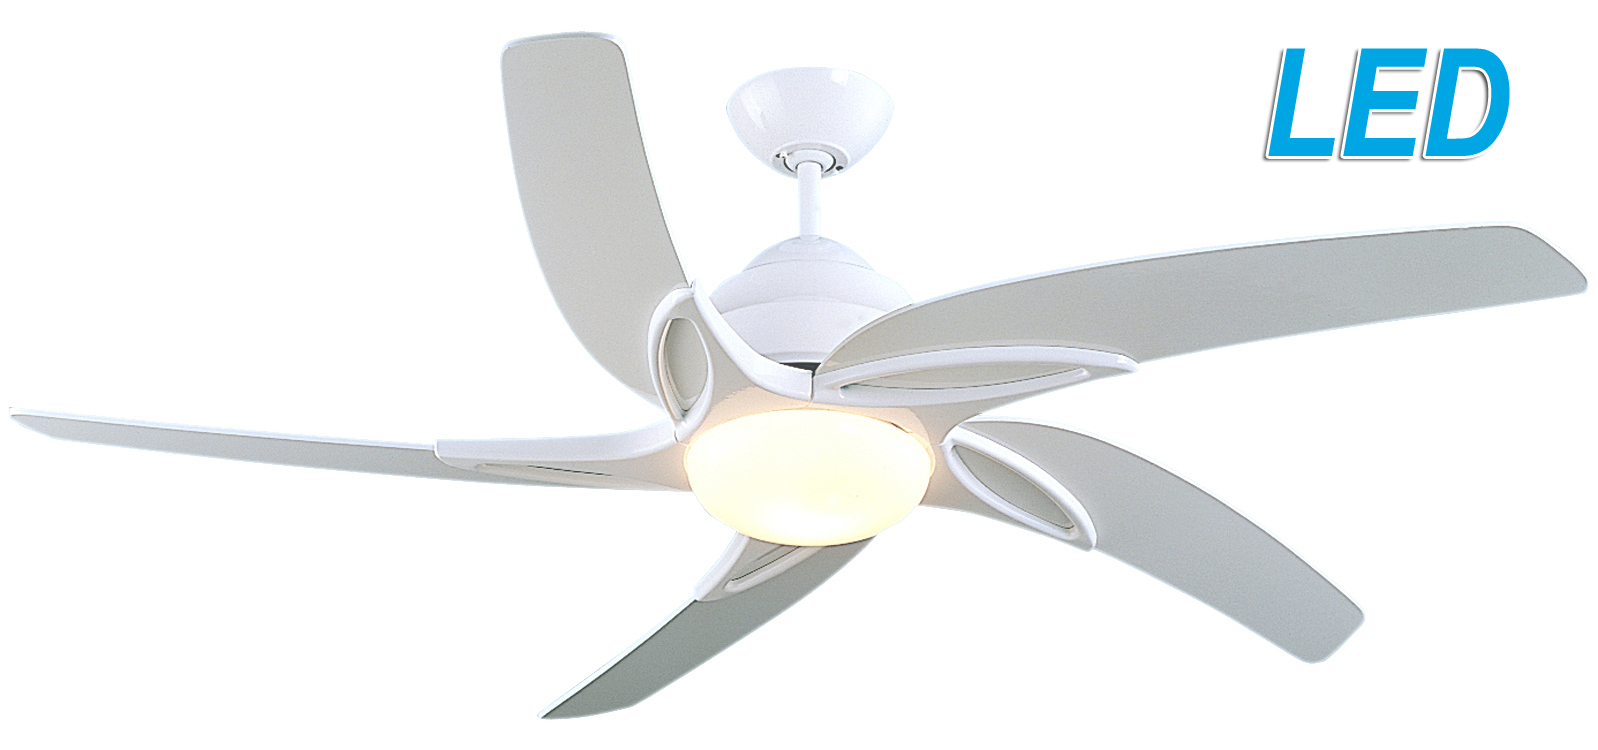 Fantasia viper 44 white ceiling fan remote control led light 115601 fantasia viper 44 white ceiling fan remote control led light 115601 aloadofball Gallery